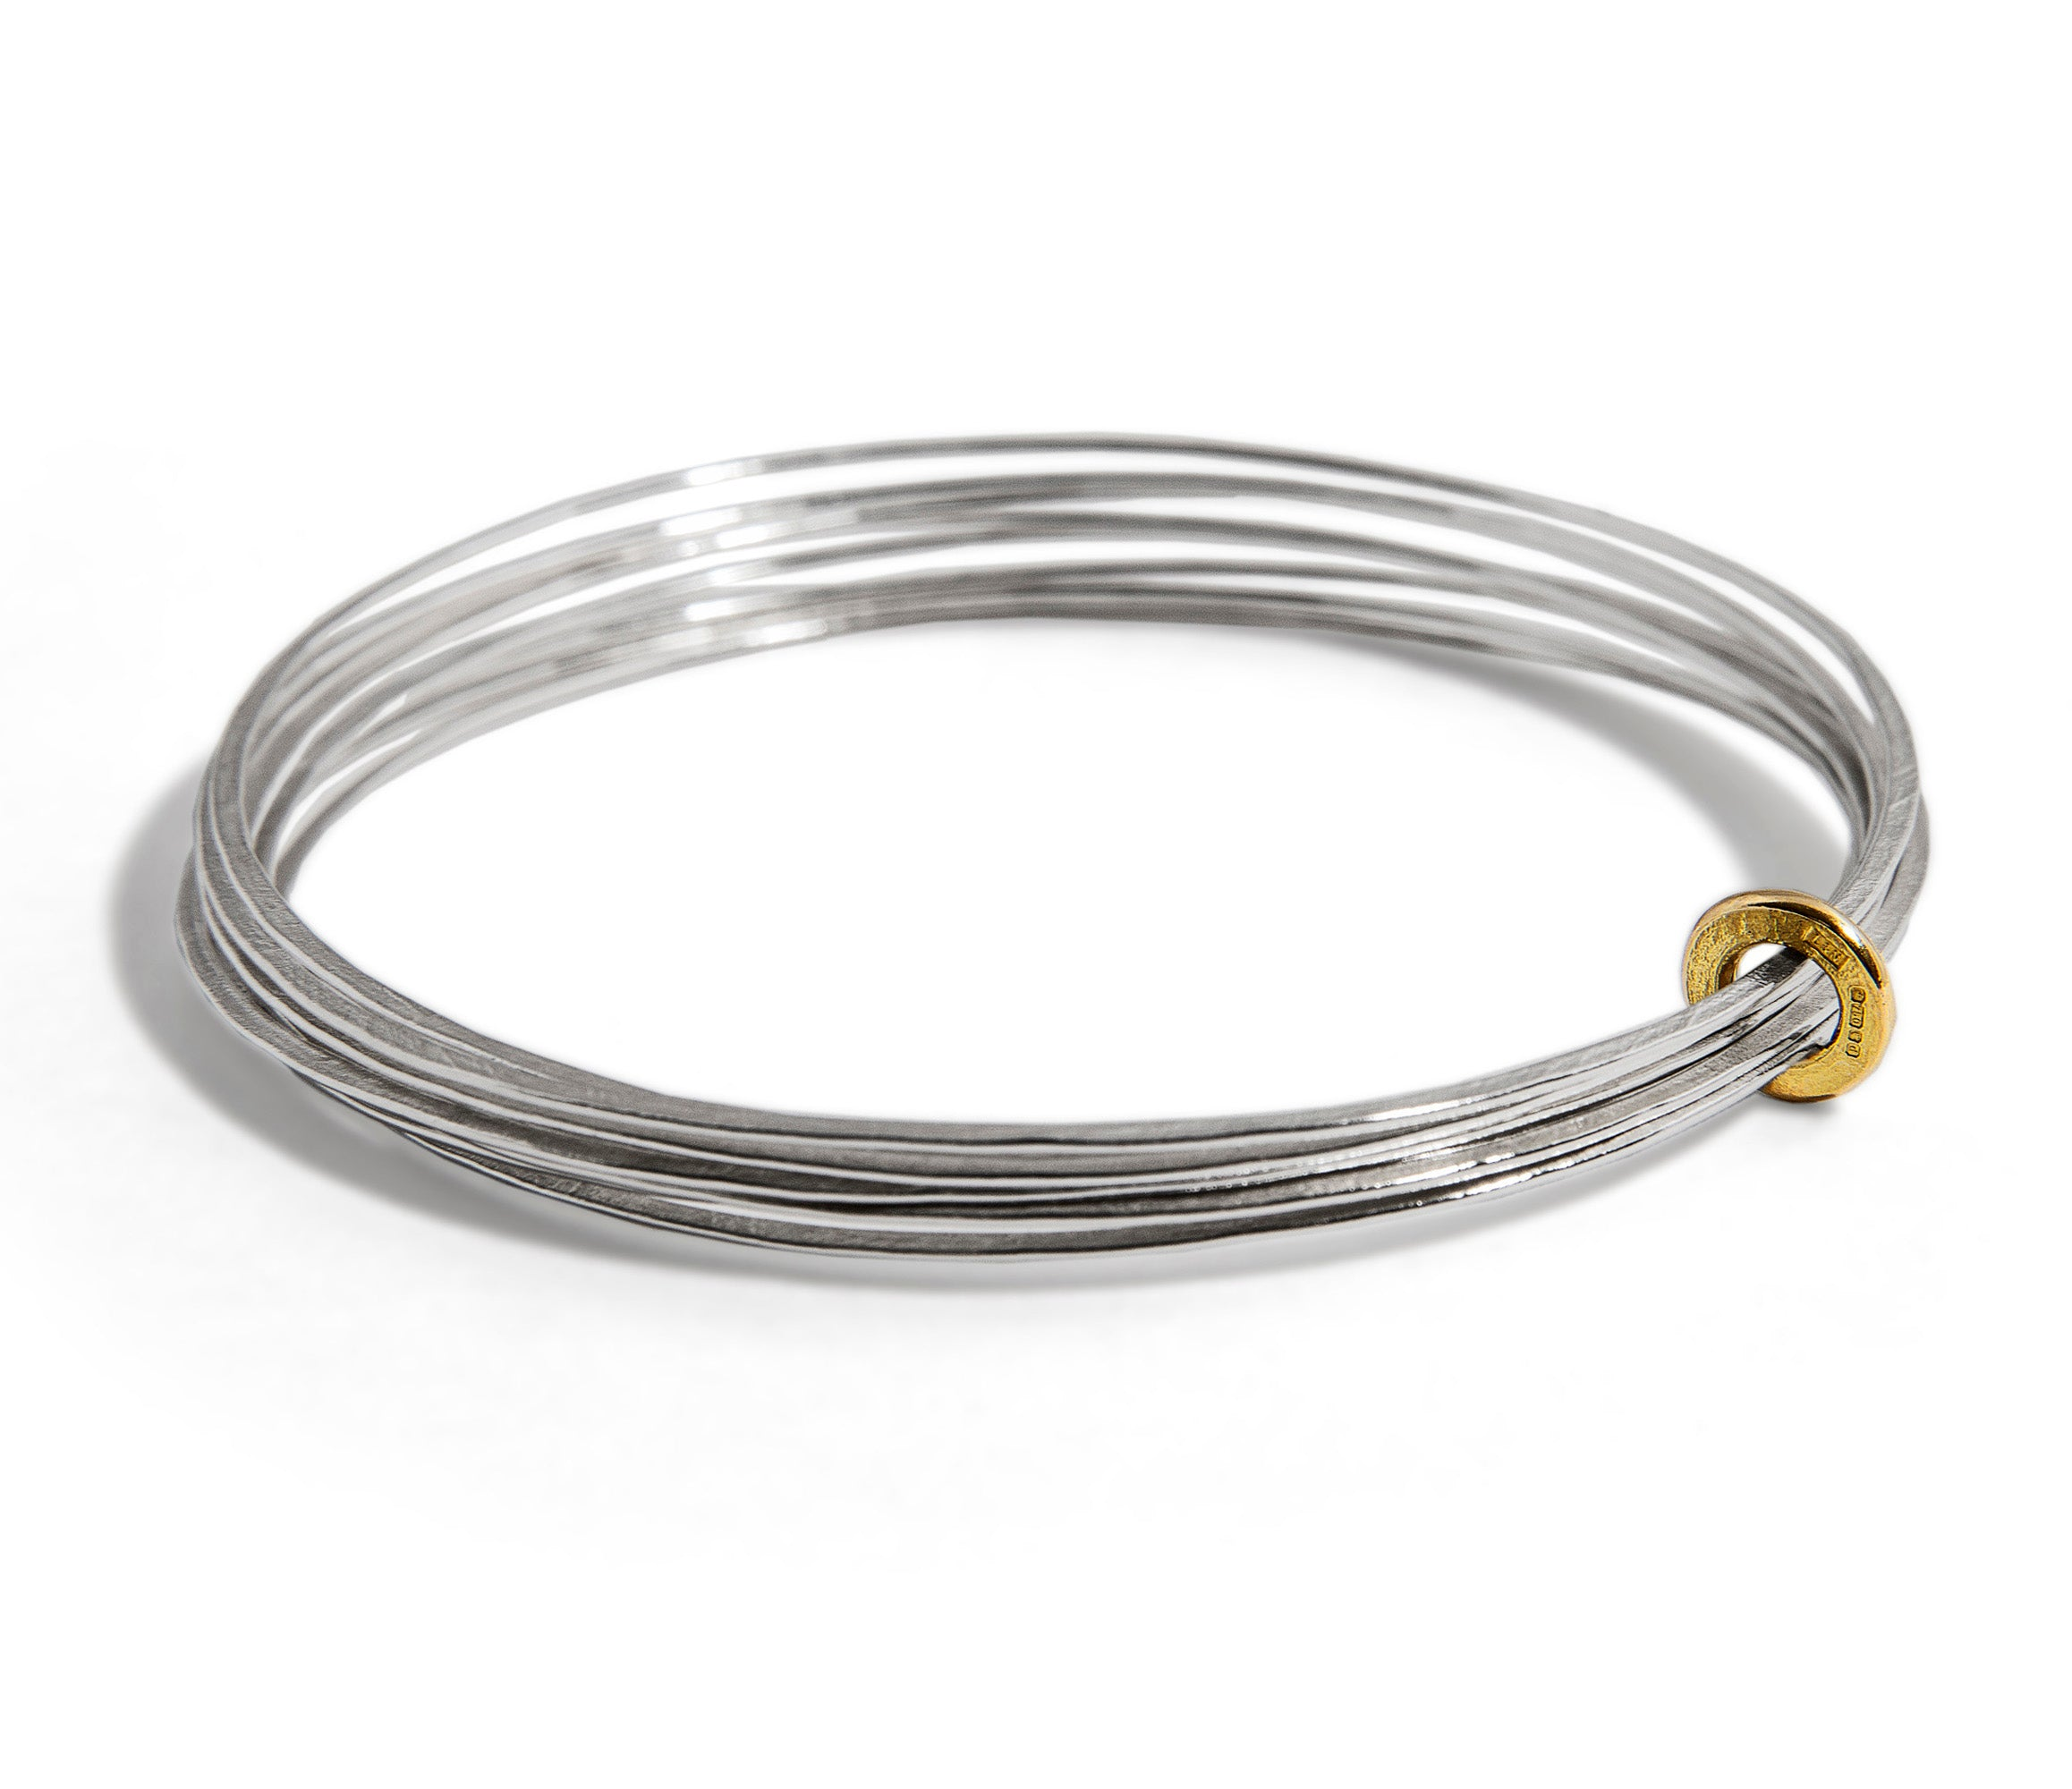 Latham and Neve – Gold and Silver Multi Ripple Bangle | Latham & Neve | Primavera Gallery